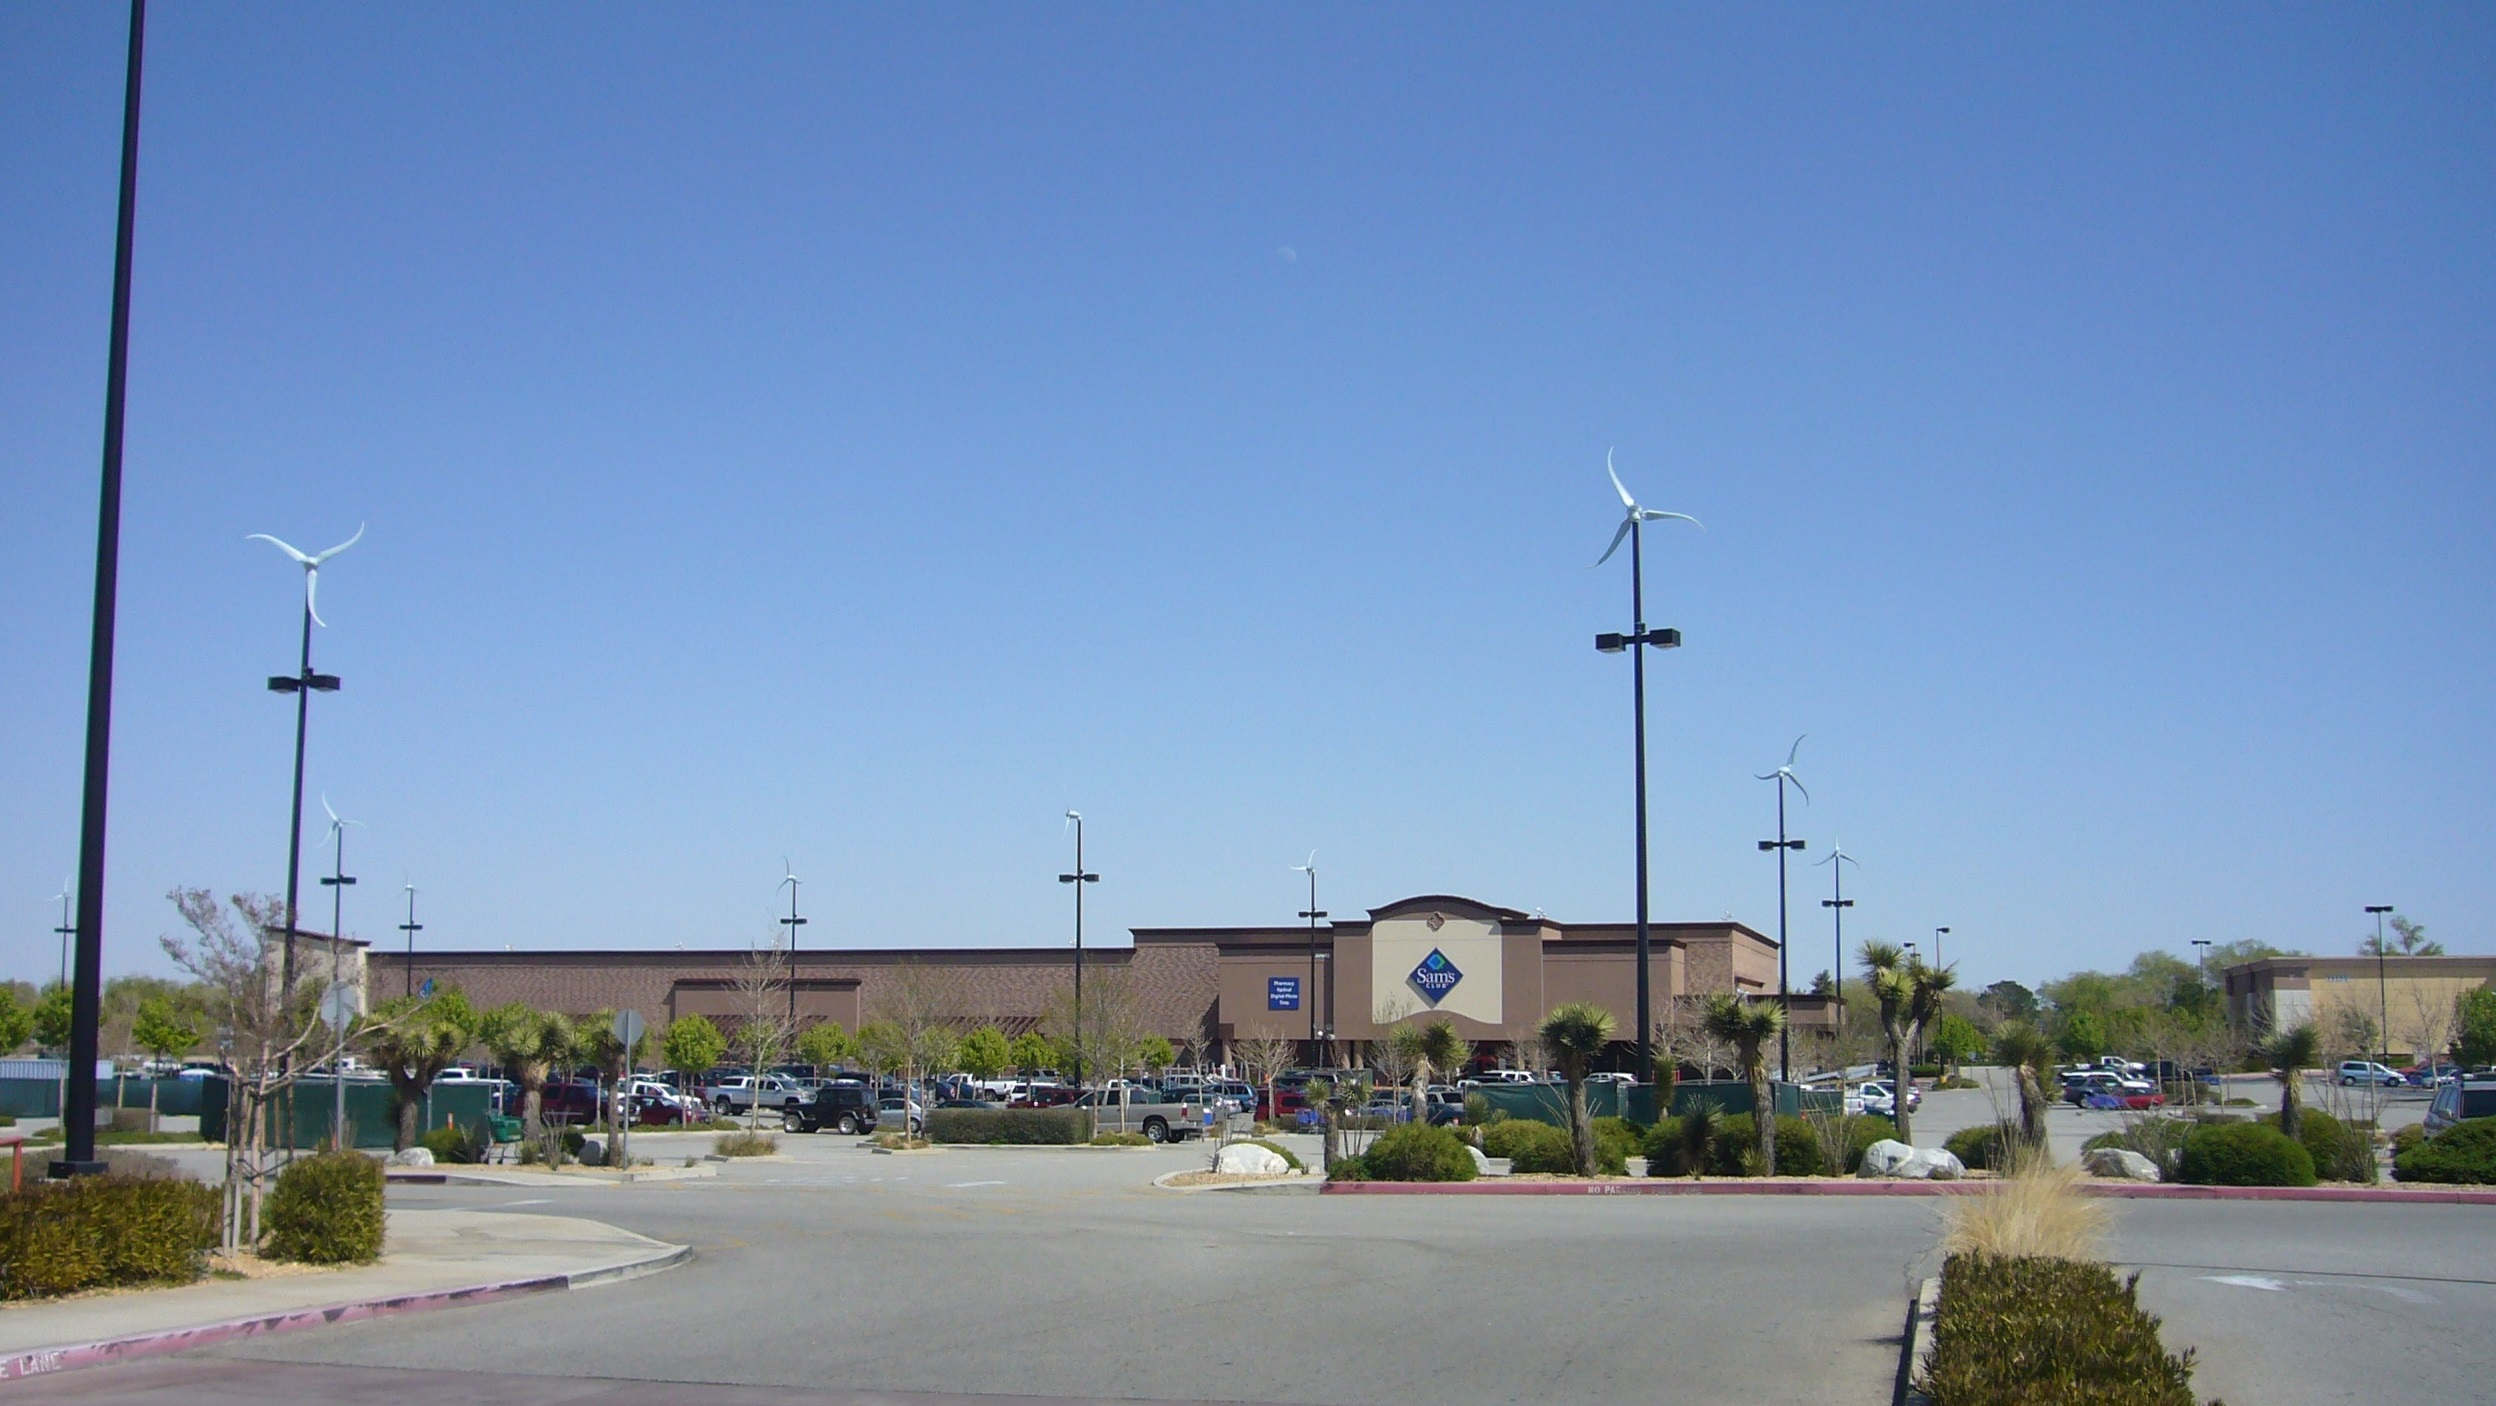 Seventeen microwind turbines from Southwest Windpower were installed at this Sam's Club store this spring by project developer Deerpath Energy.